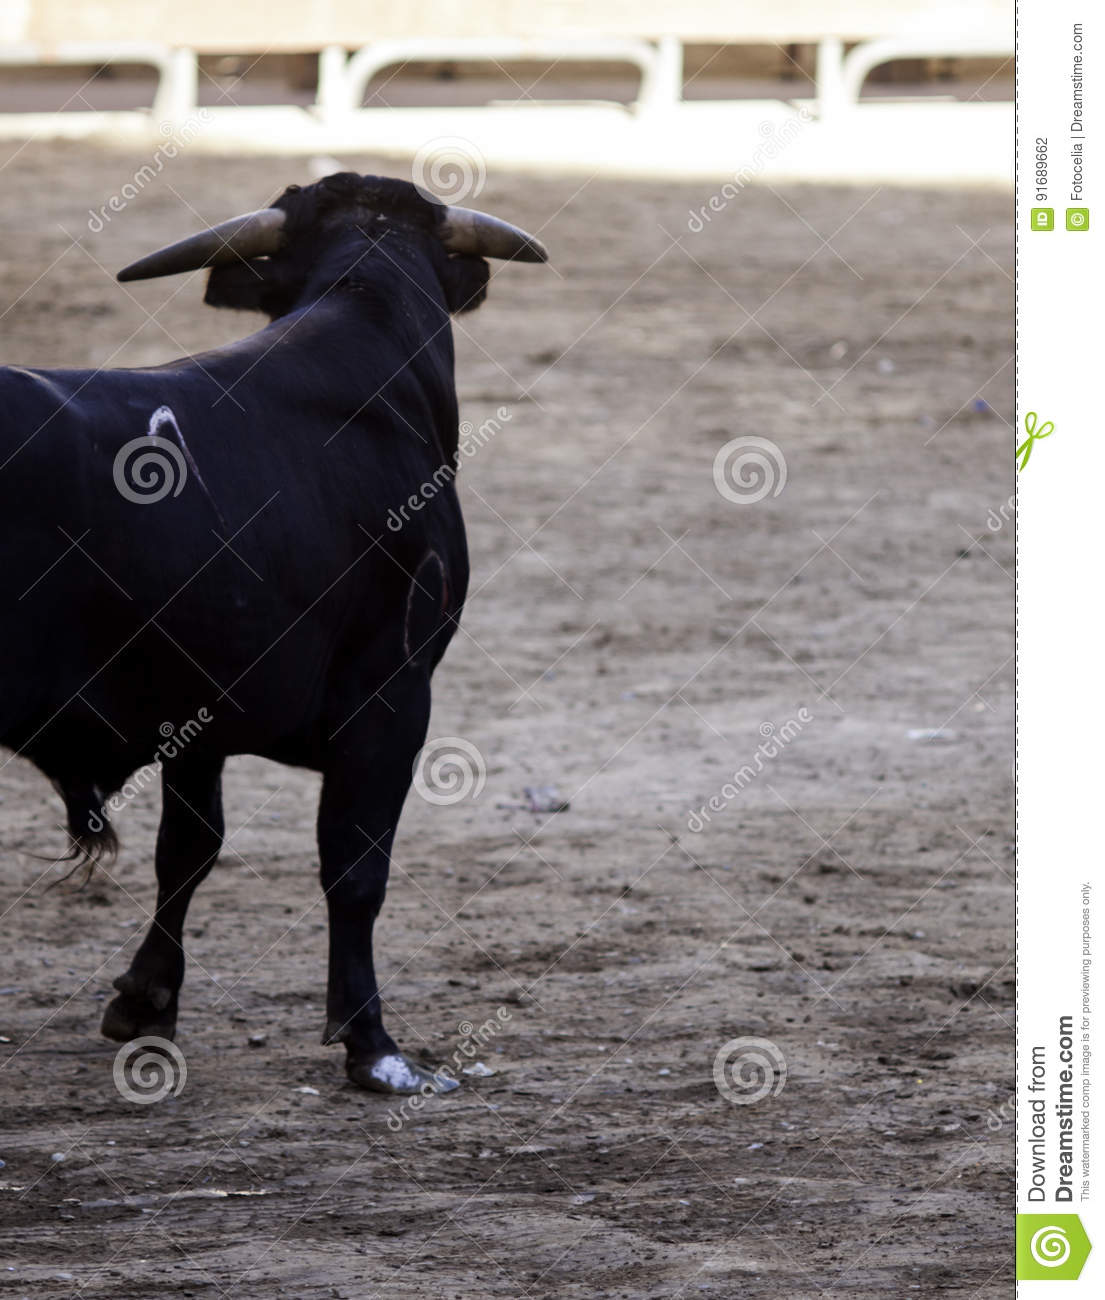 Bull in the ring stock photo  Image of blood, arena, black - 91689662